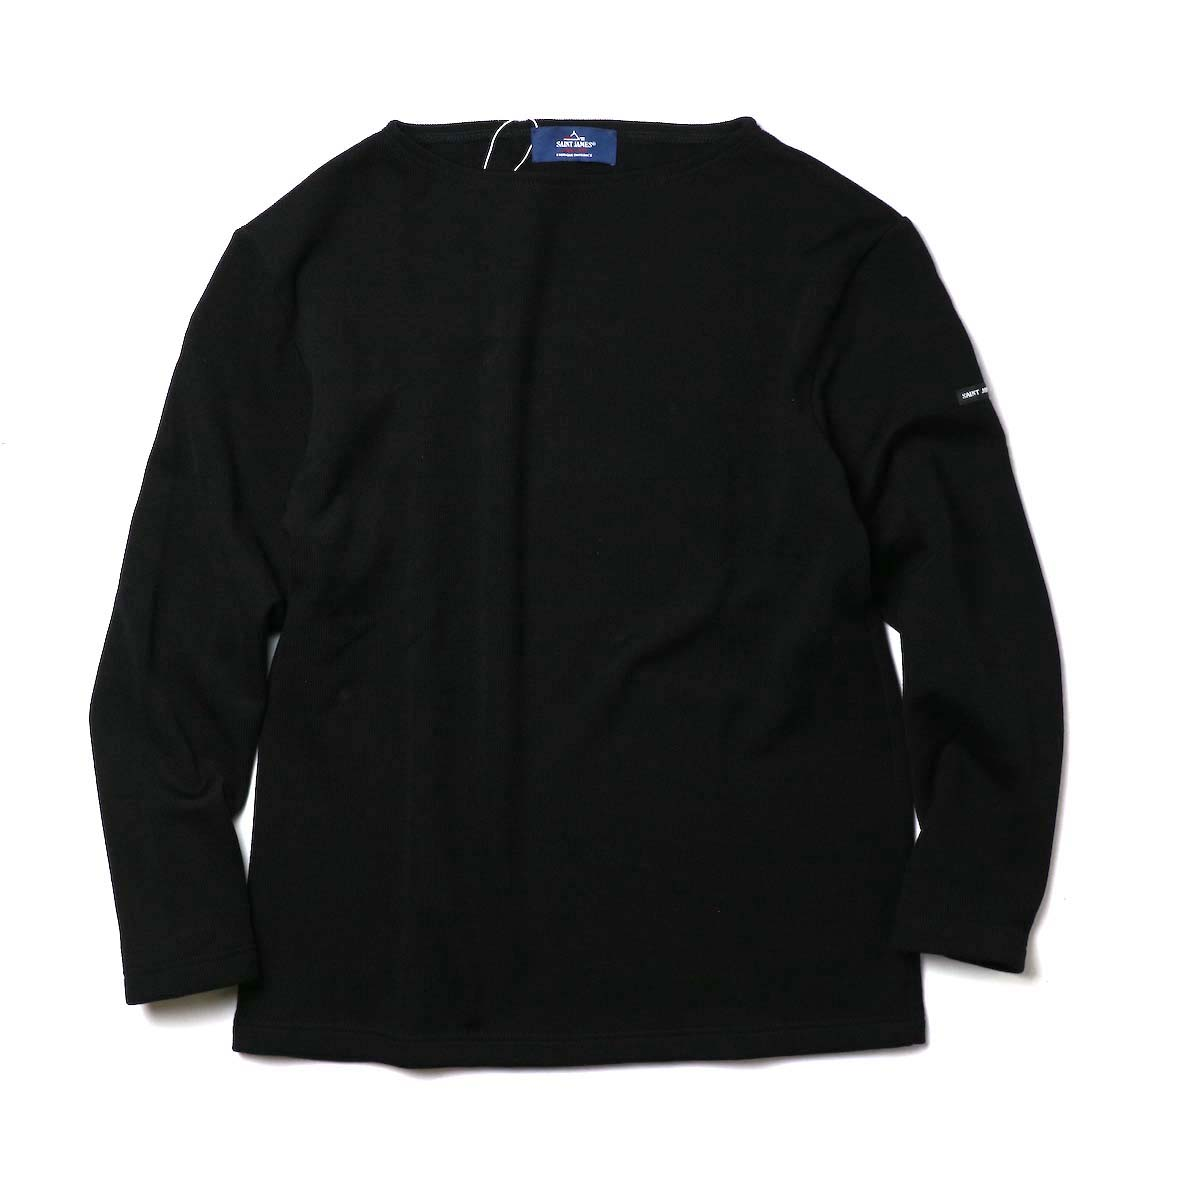 SAINT JAMES / DOUBLEFACE SWEATER (Black)